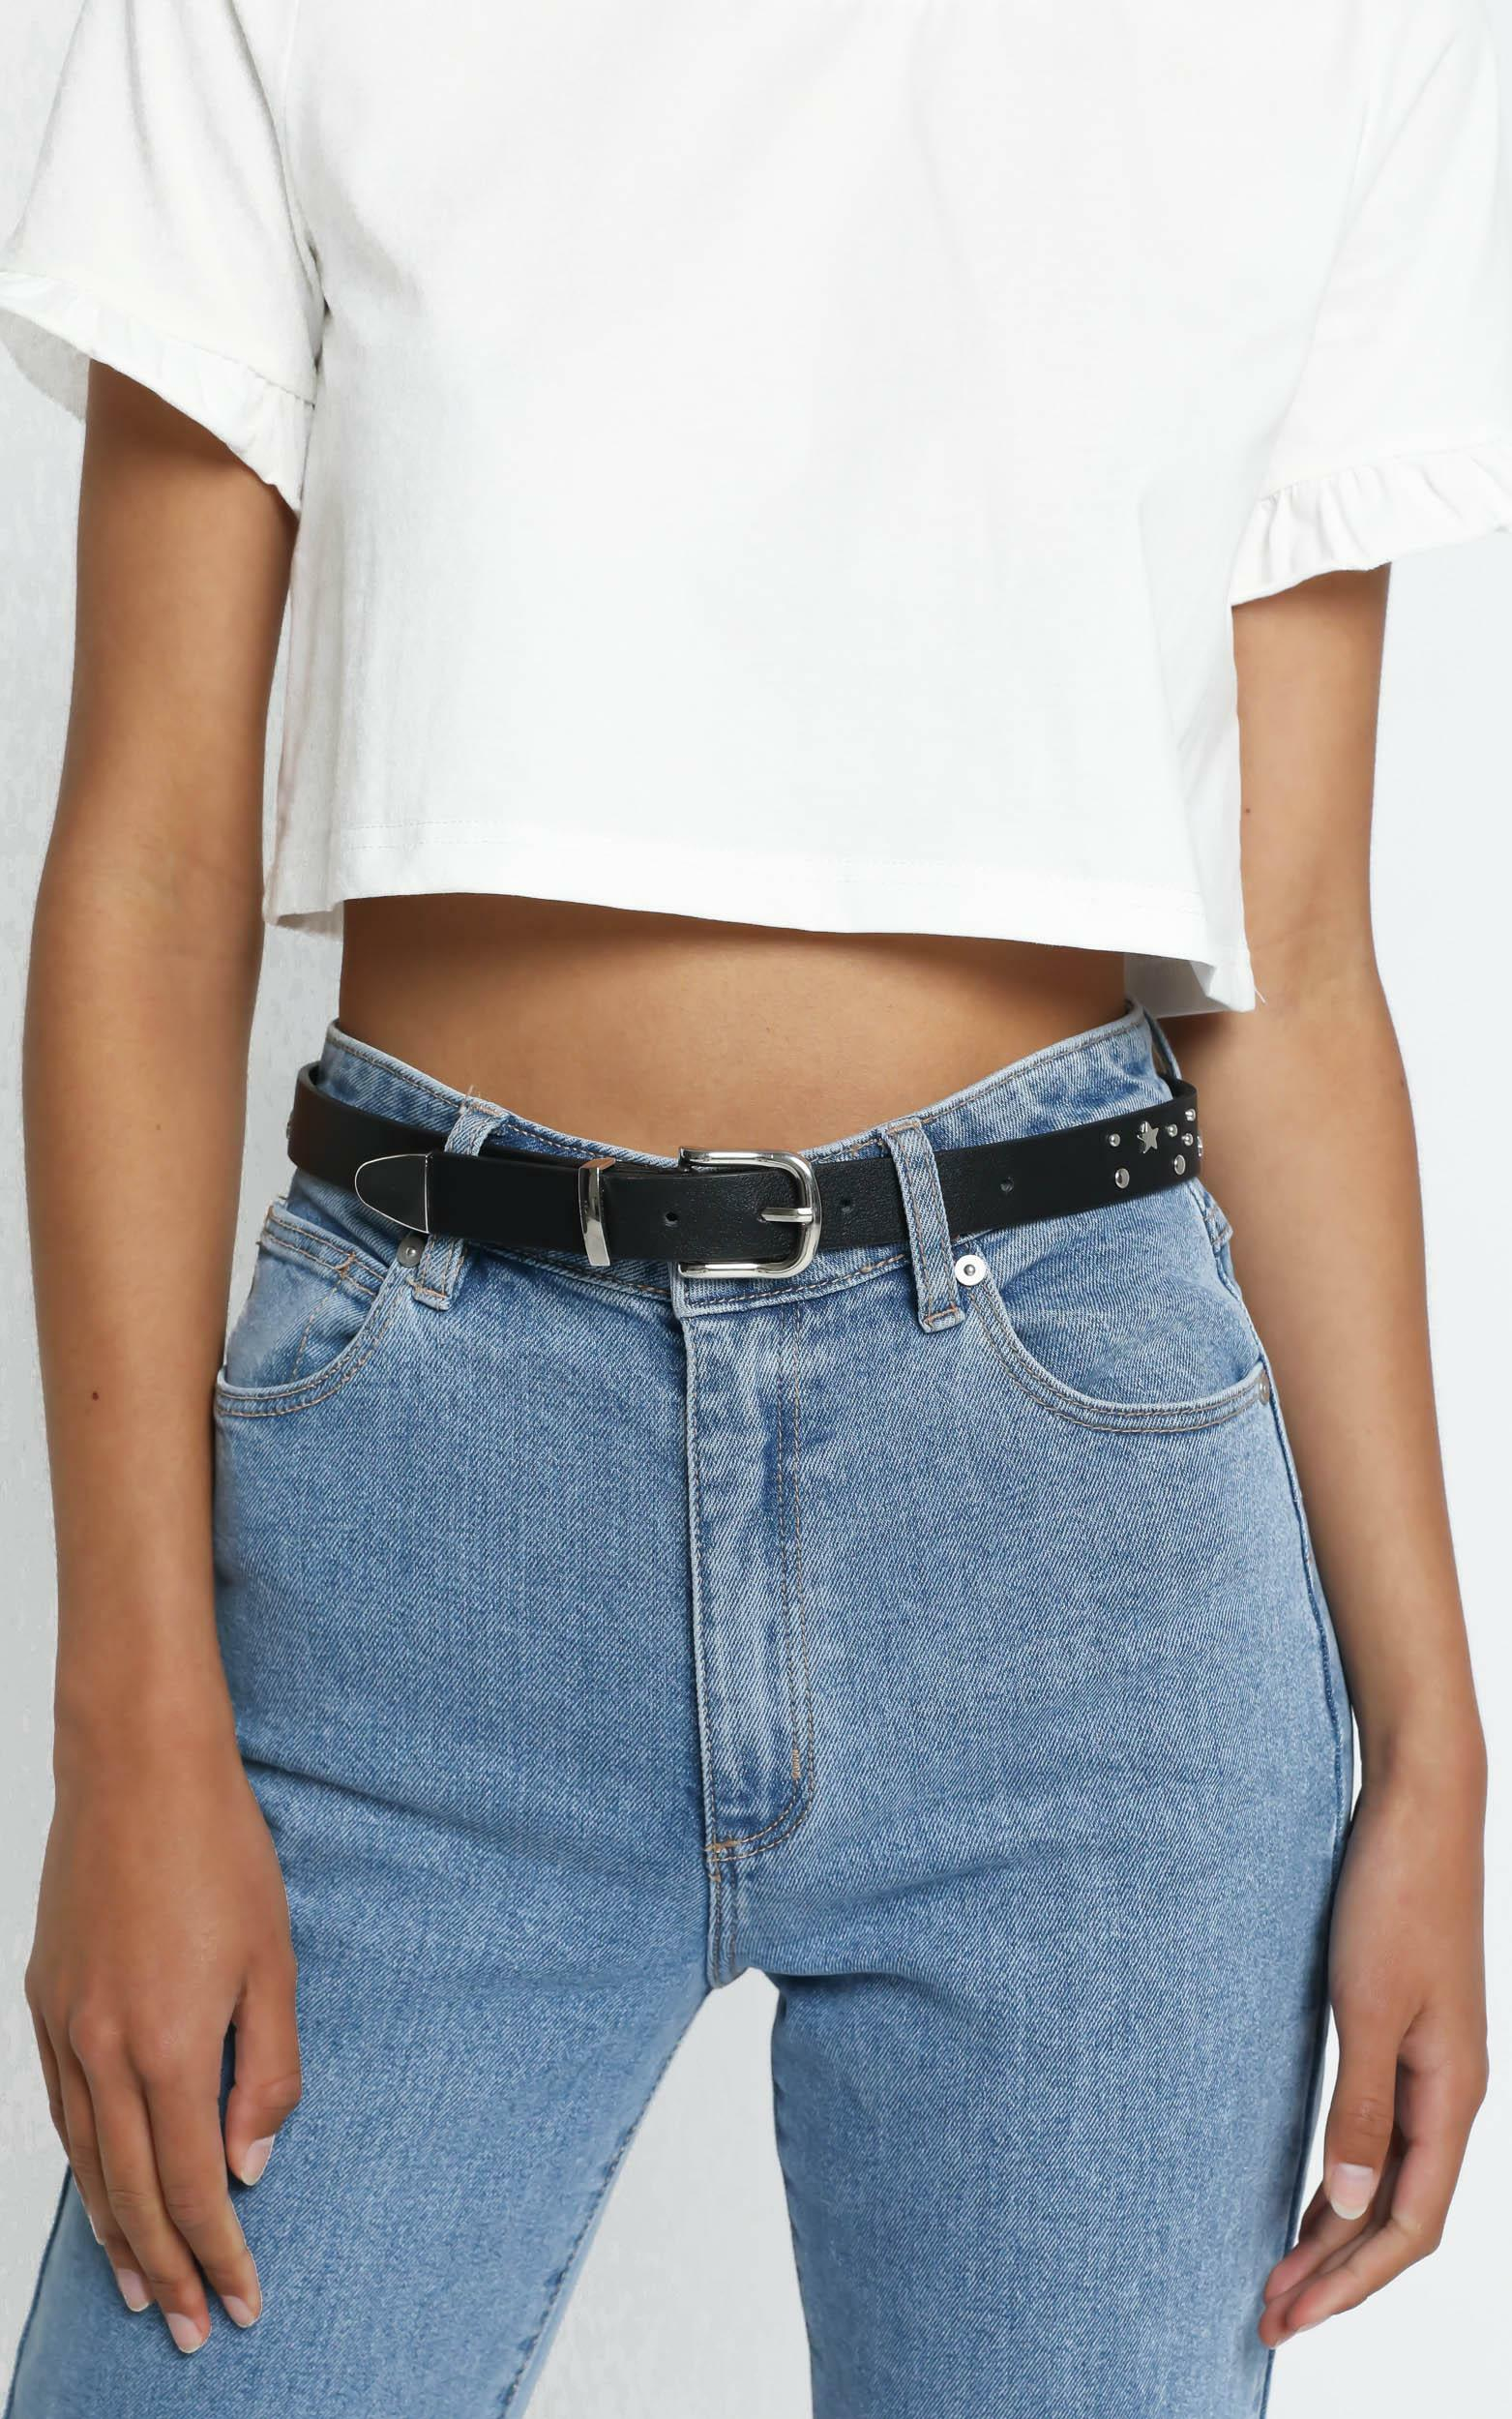 Eila Belt in Black, , hi-res image number null